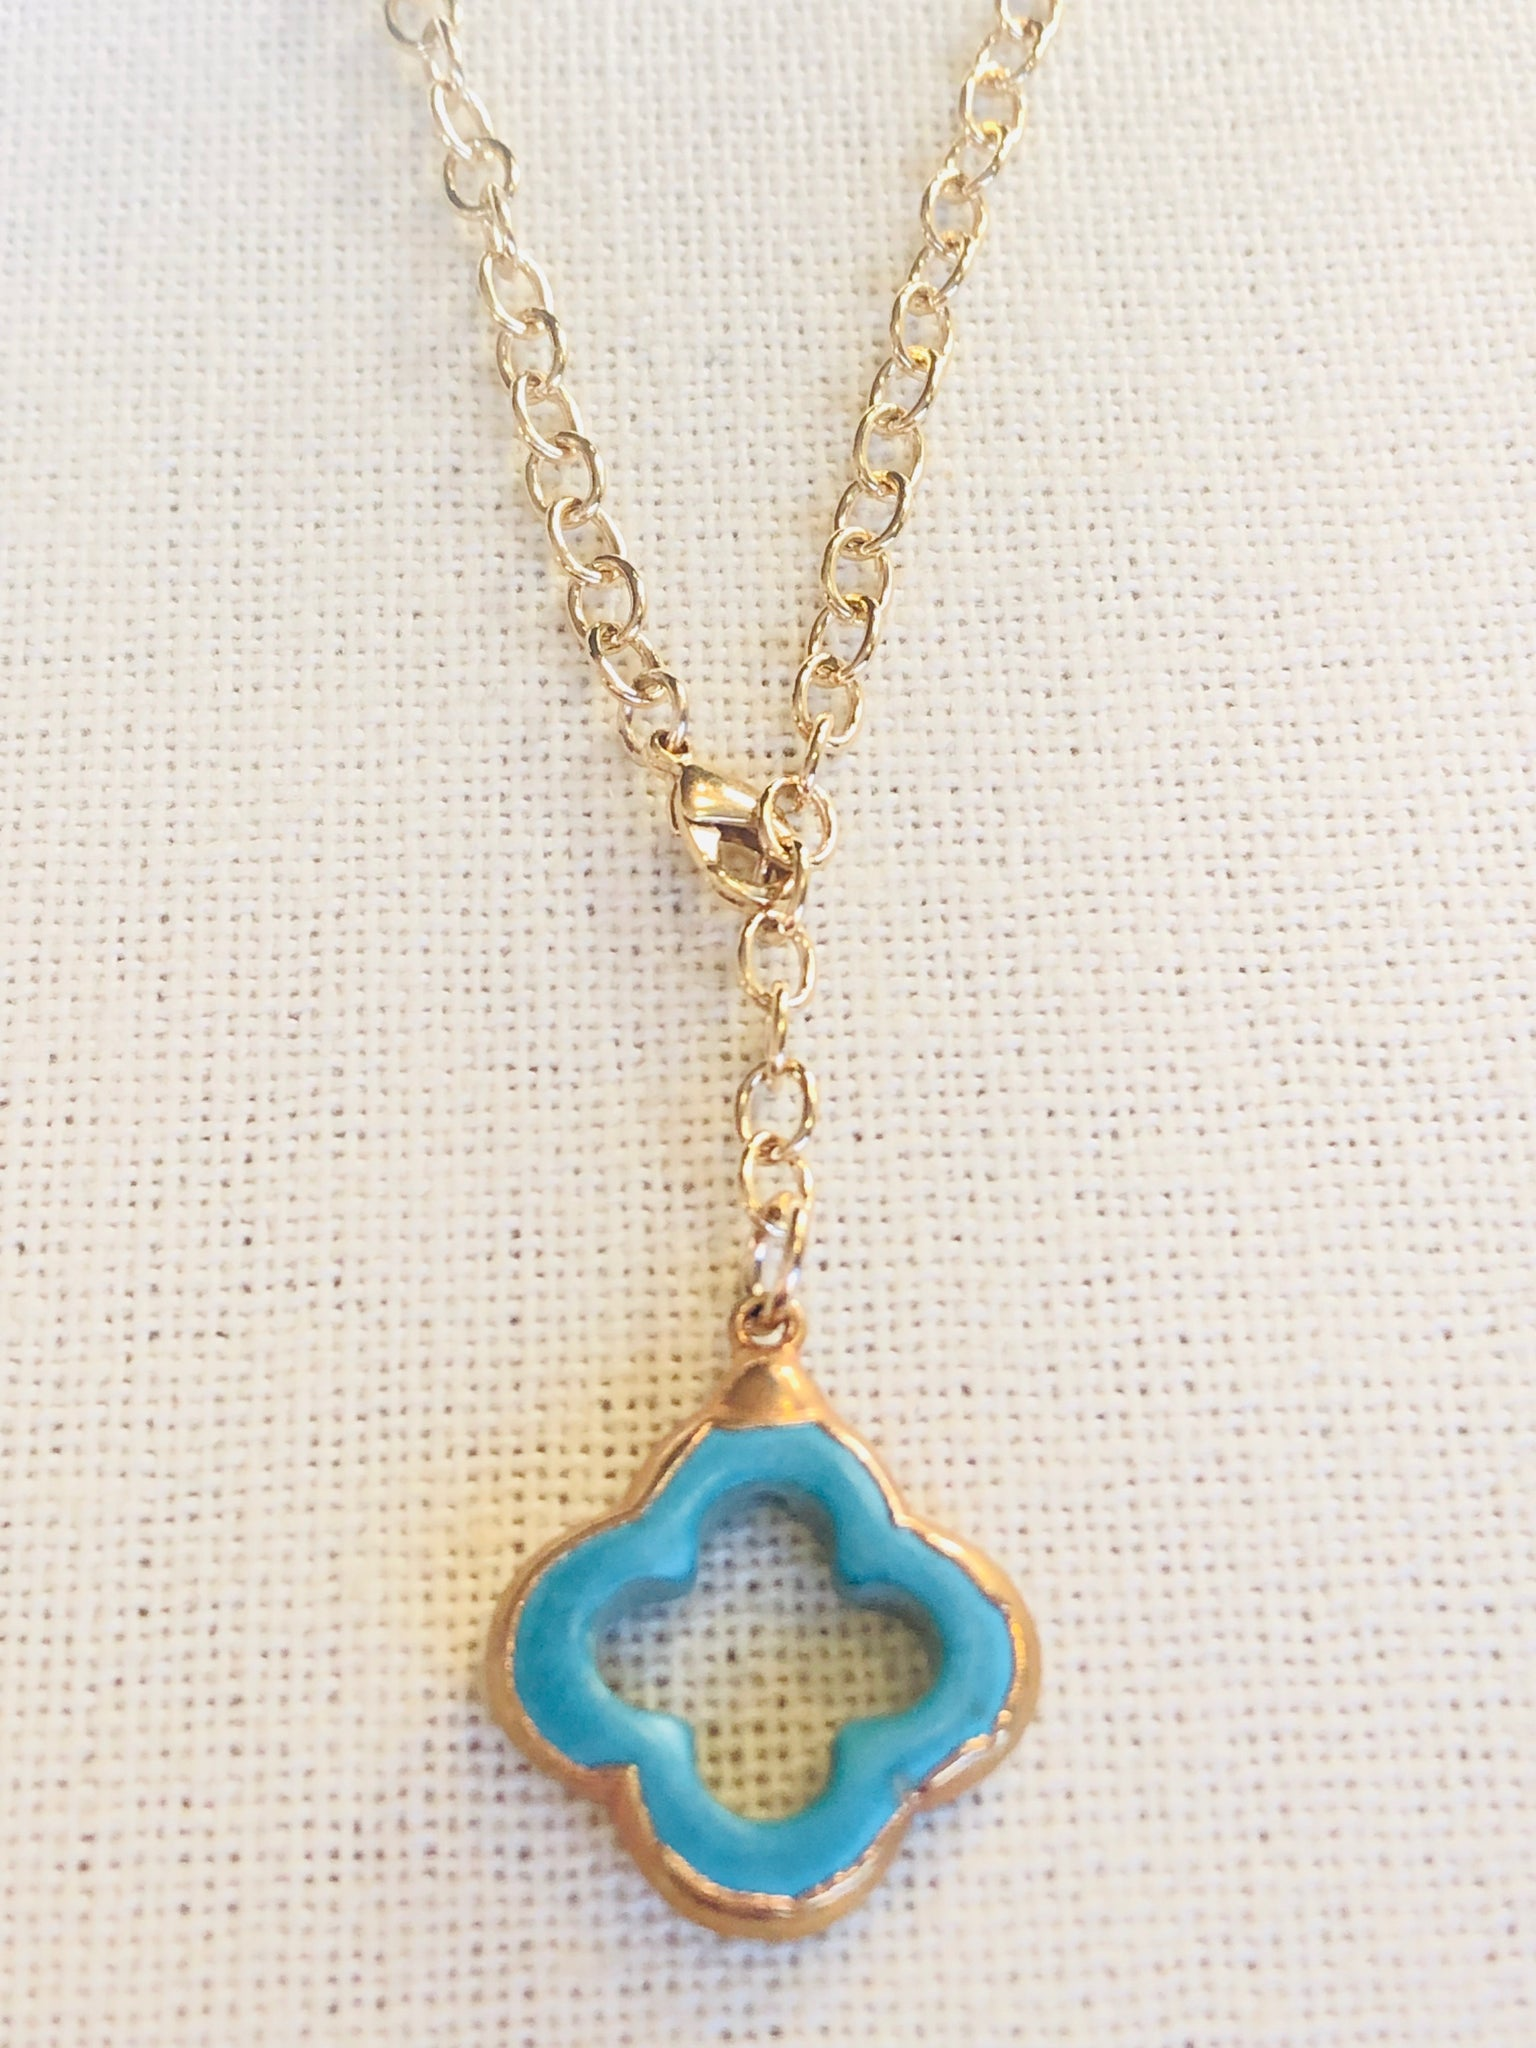 Arizona Turquoise Clover Y Drop Necklace on Gold Chain by Sage Machado - The Sage Lifestyle